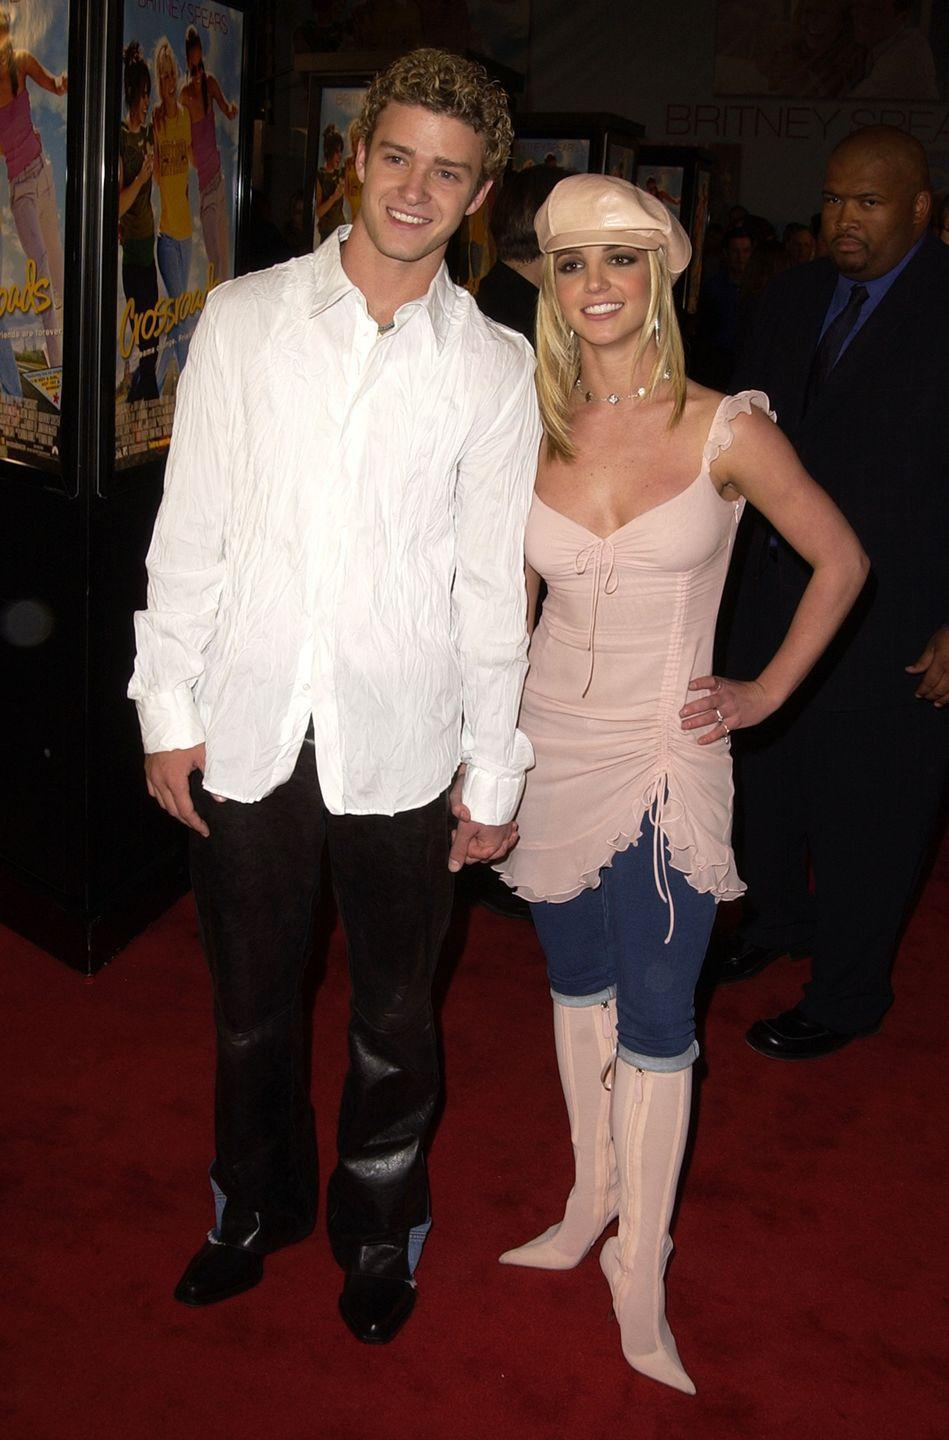 <p>I wasn't joking about the newsboy caps. But let's also quickly mention (1) the thigh-high boots, (2) the dress over jeans, and (3) JT's shiny pants because they are quite something.</p>